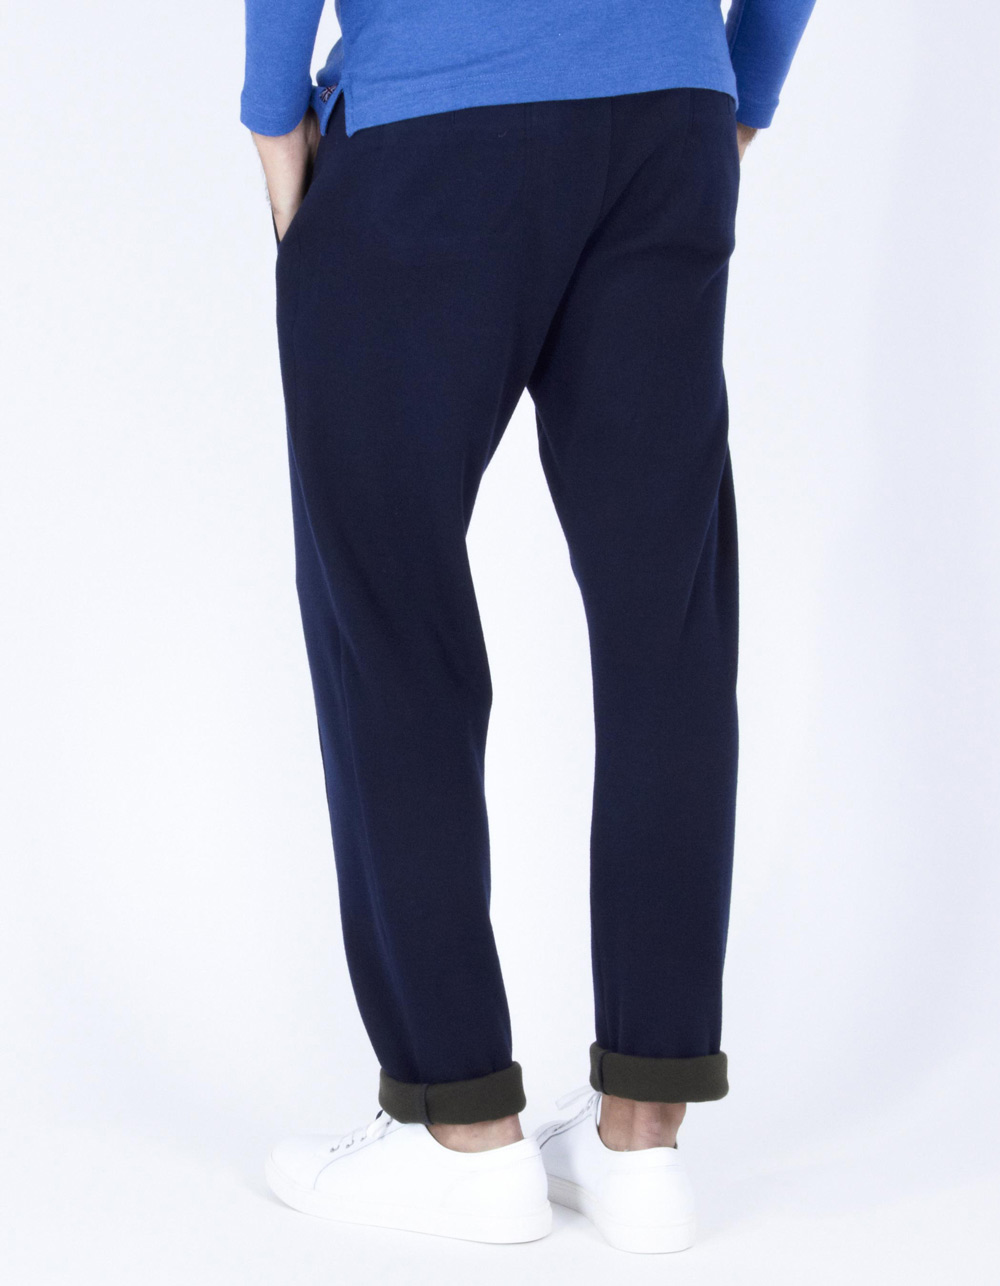 Navy blue sport trousers with darts - Backside